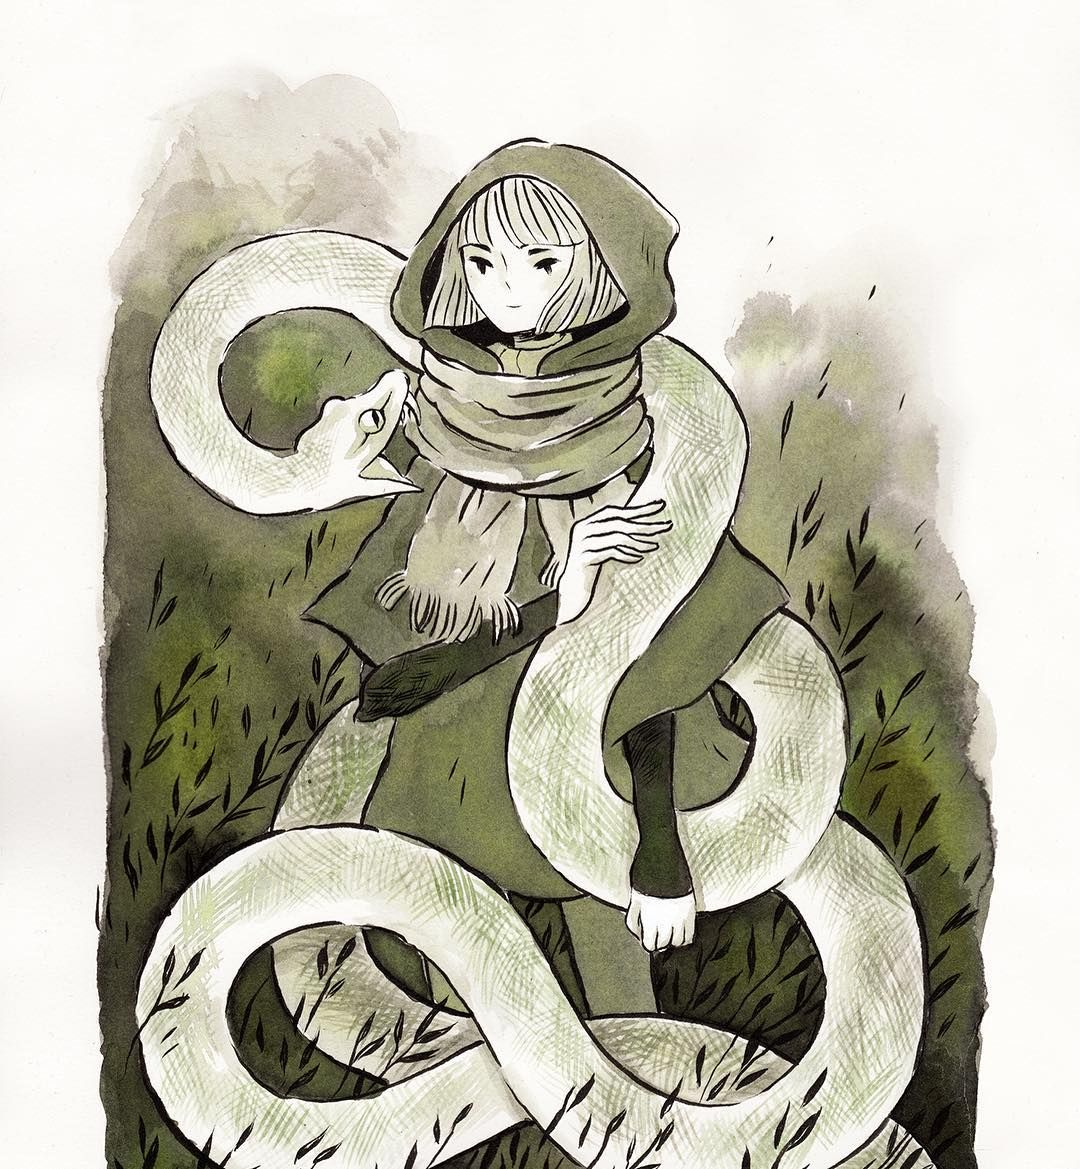 Inktober day 1, A witch and a white python familiar I'm doing just witches this inktober  #inktober #illustration #witch #python